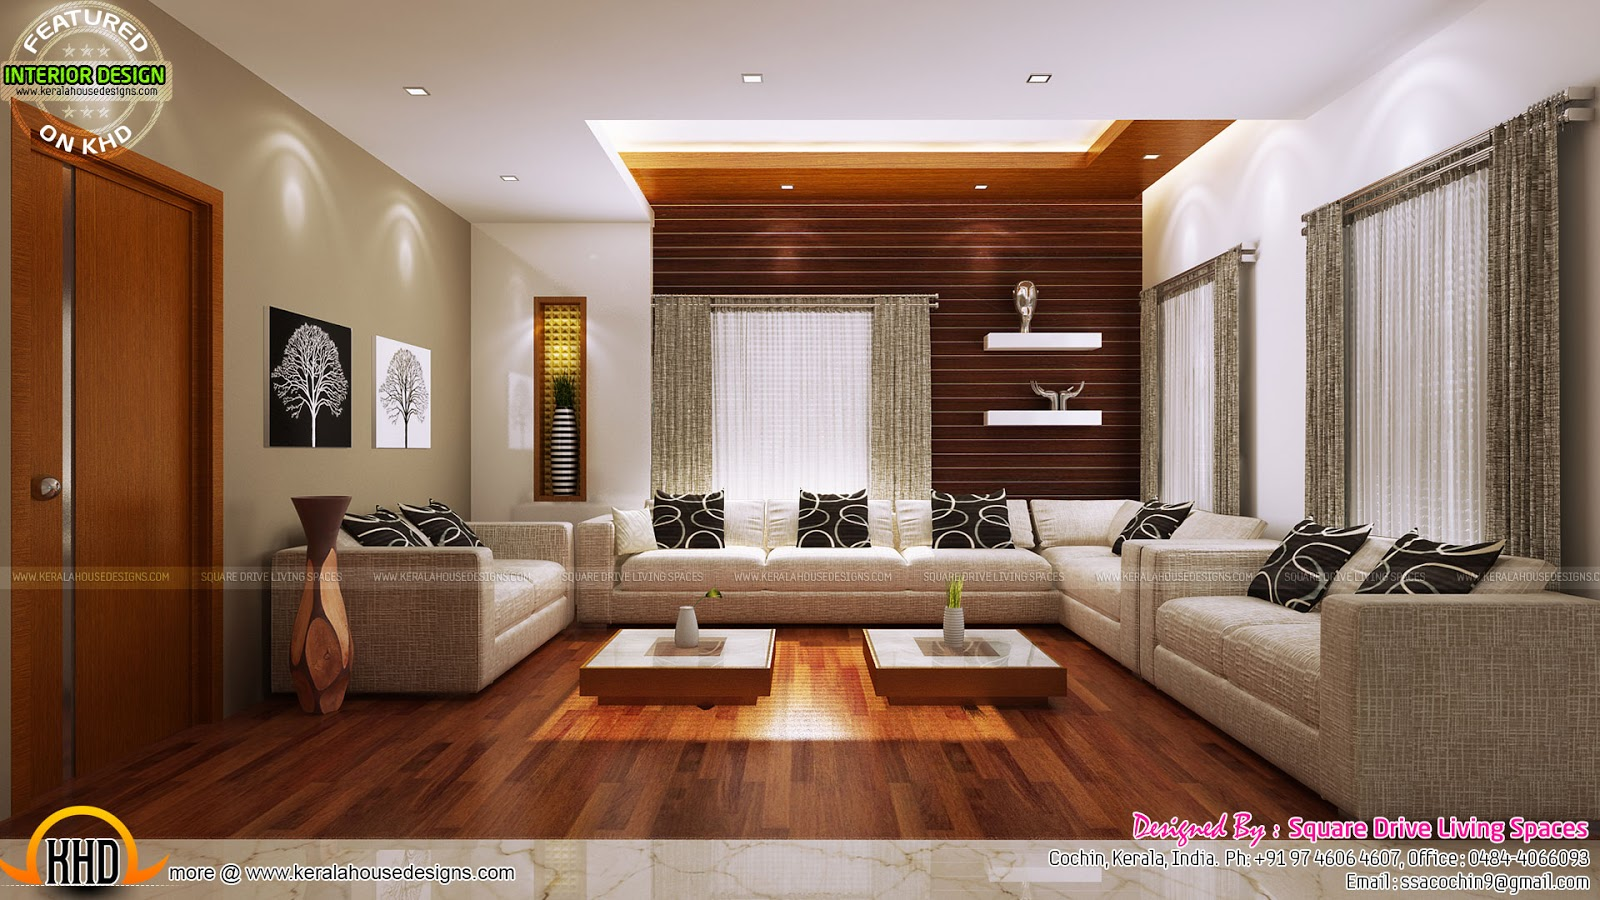 Excellent kerala interior design kerala home design and for Interior designs in kerala